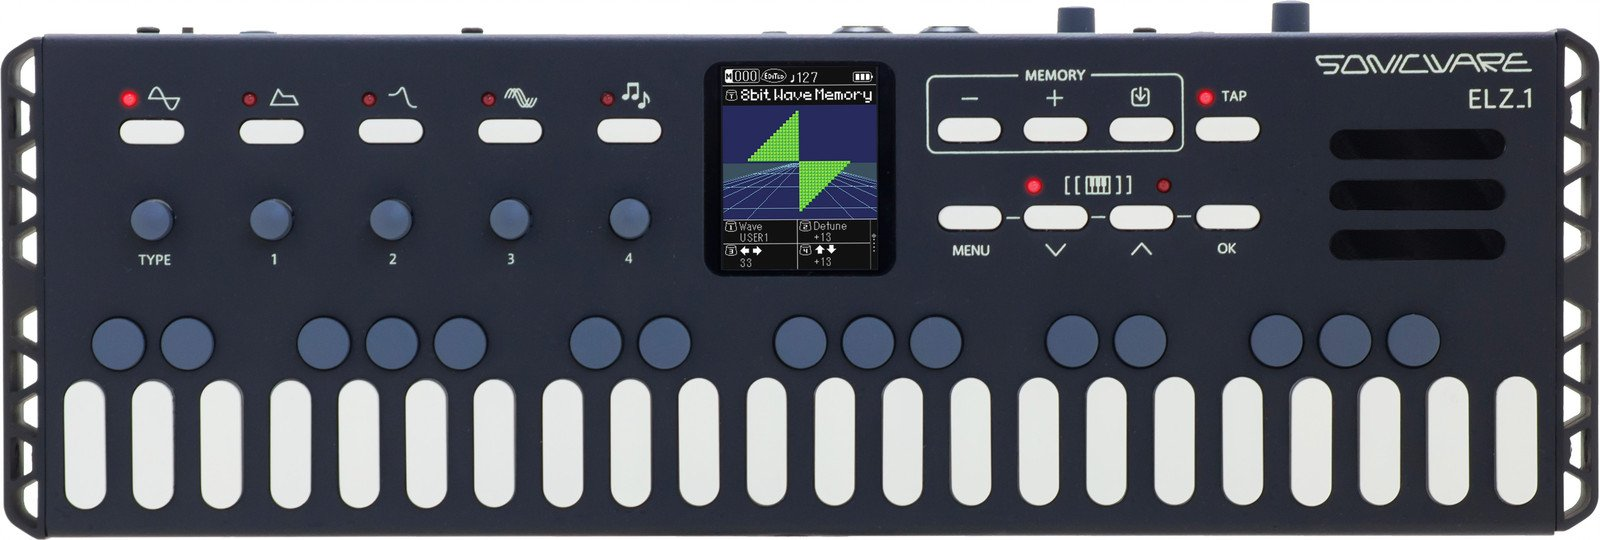 Sonicware - ELZ 1 - Compact Synthesizer